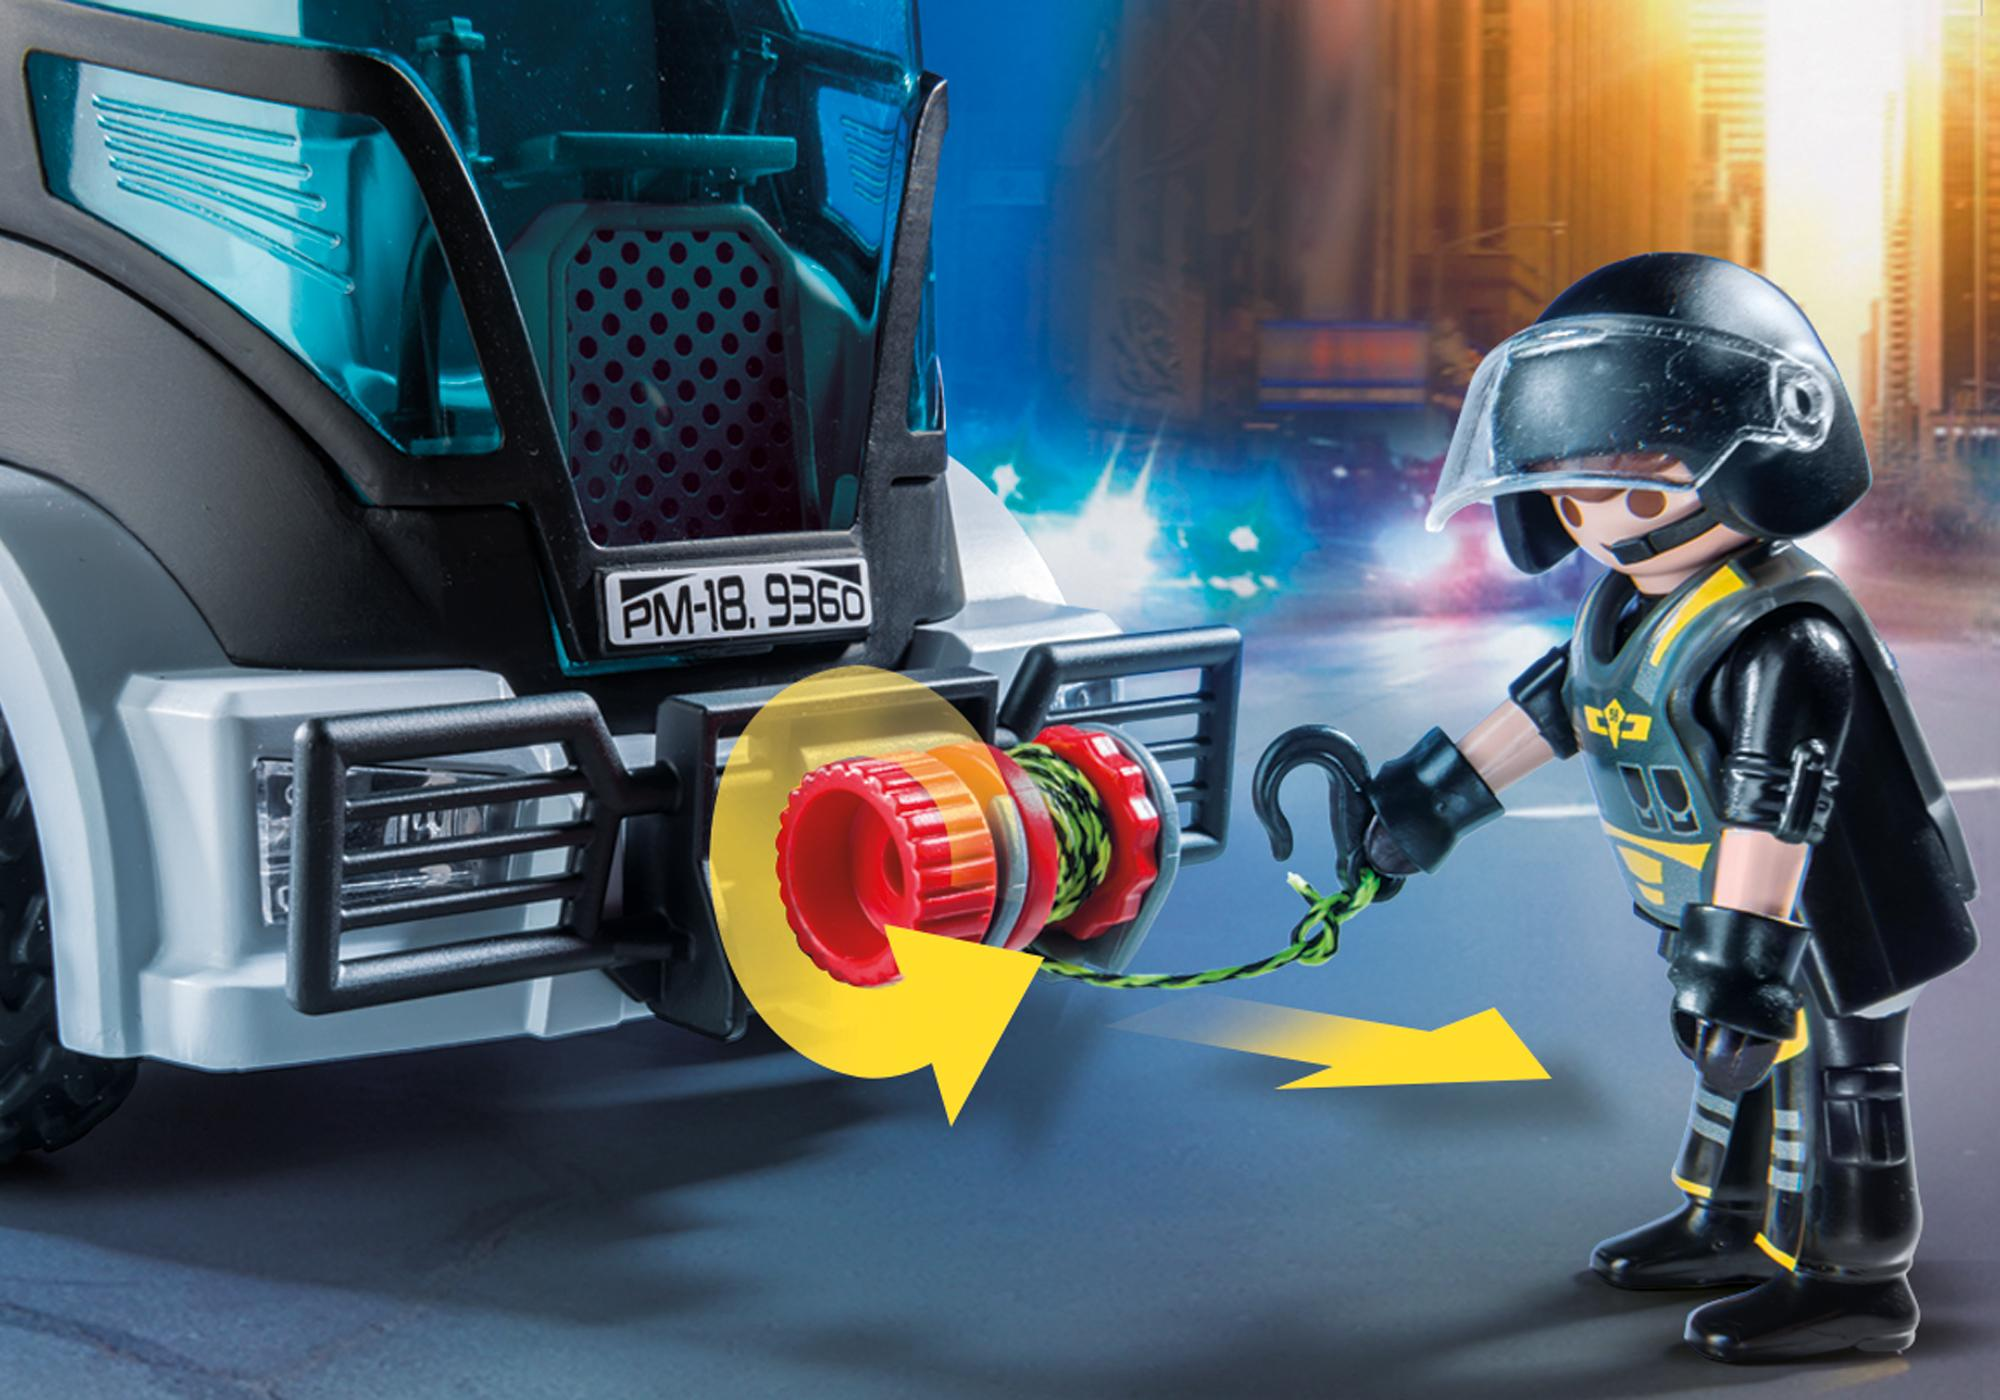 http://media.playmobil.com/i/playmobil/9360_product_extra2/Θωρακισμένο όχημα Ειδικών Αποστολών